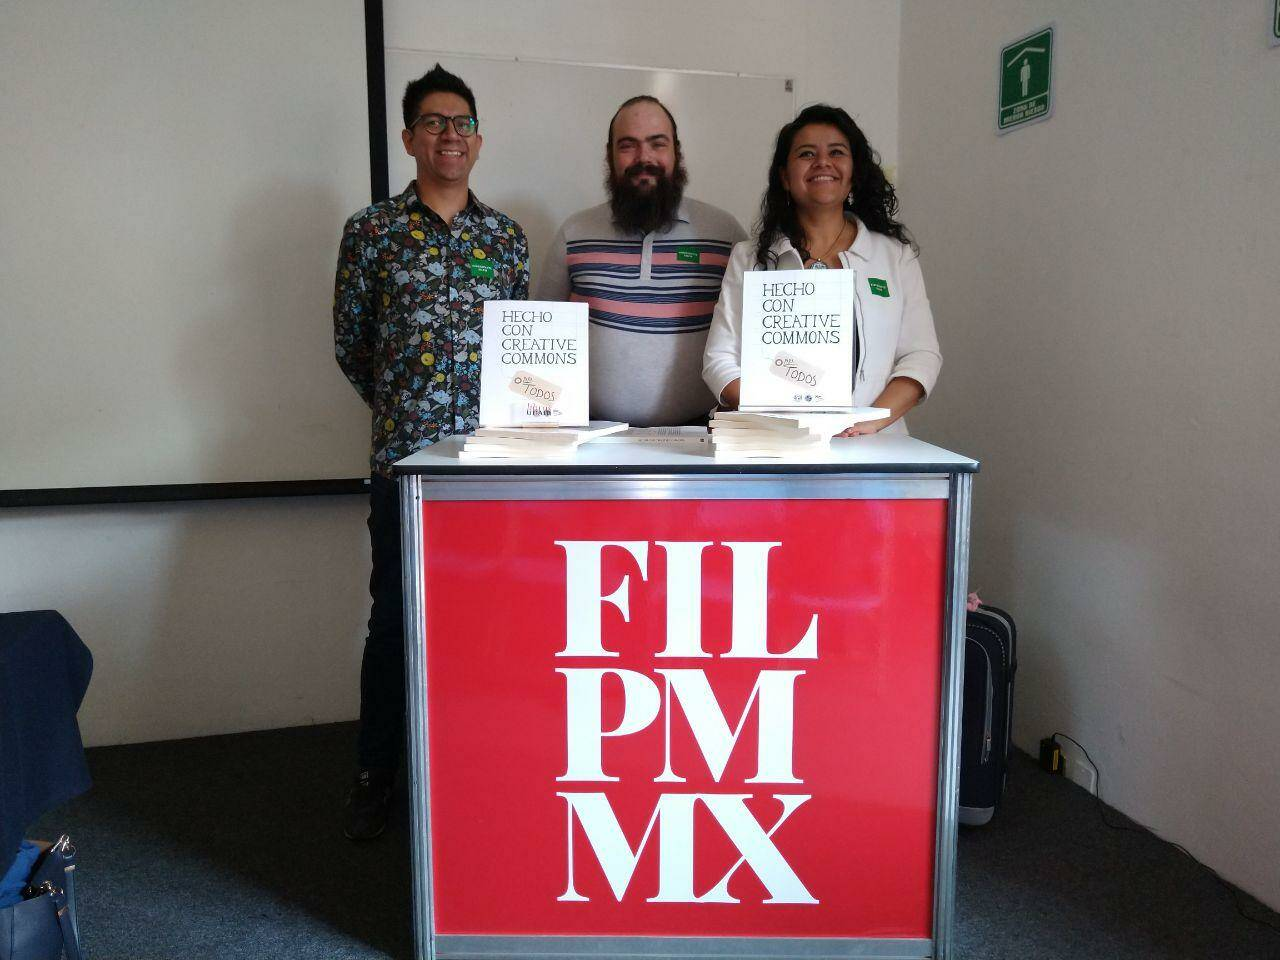 Iván Martínez, Gunnar Wolf and Irene Soria, Creative Commons Mexico chapter